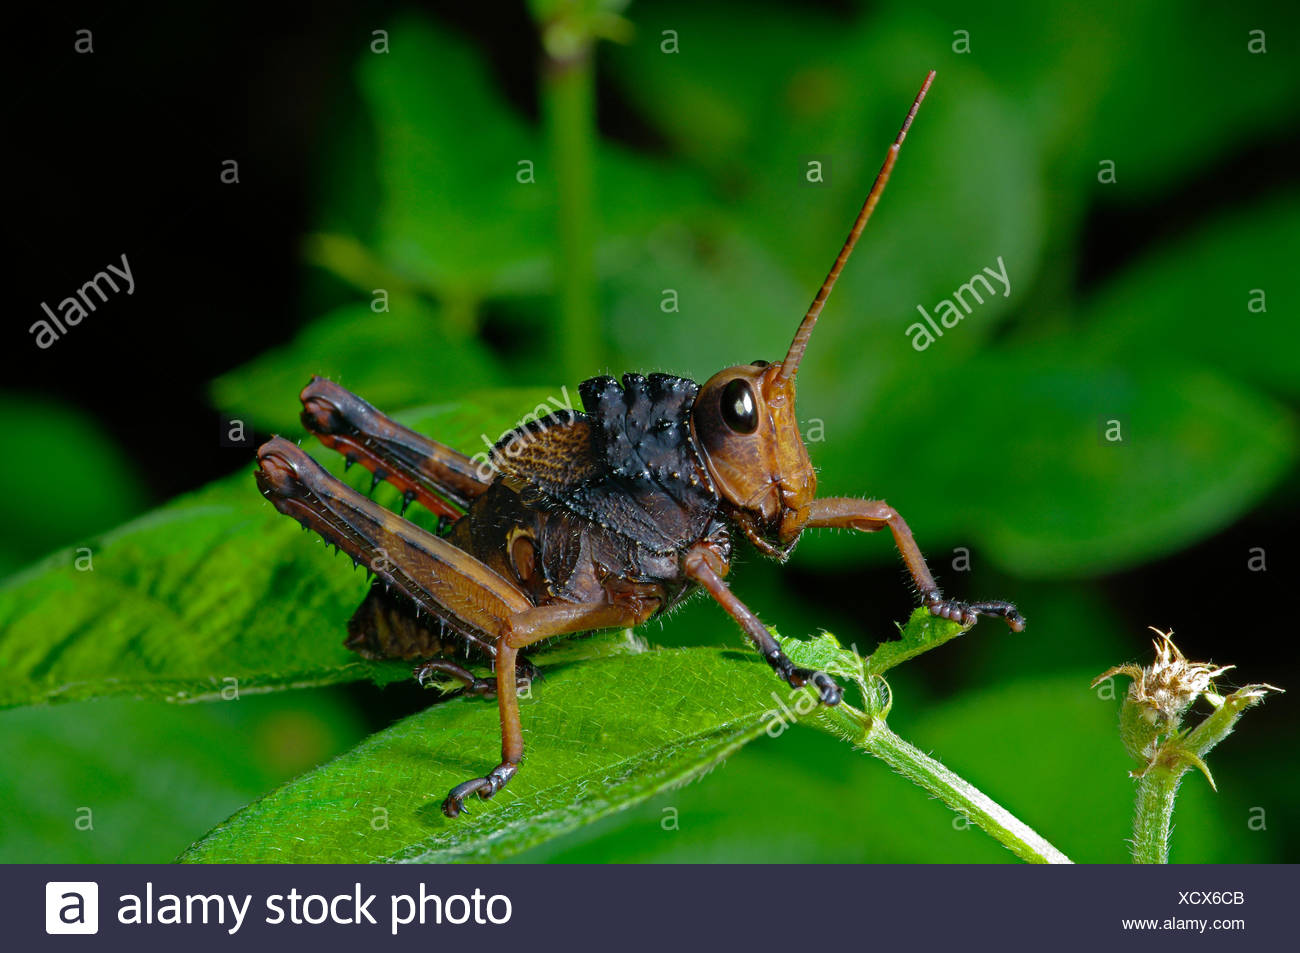 macro close-up macro admission close up view insect jungle grasshopper macro - Stock Image